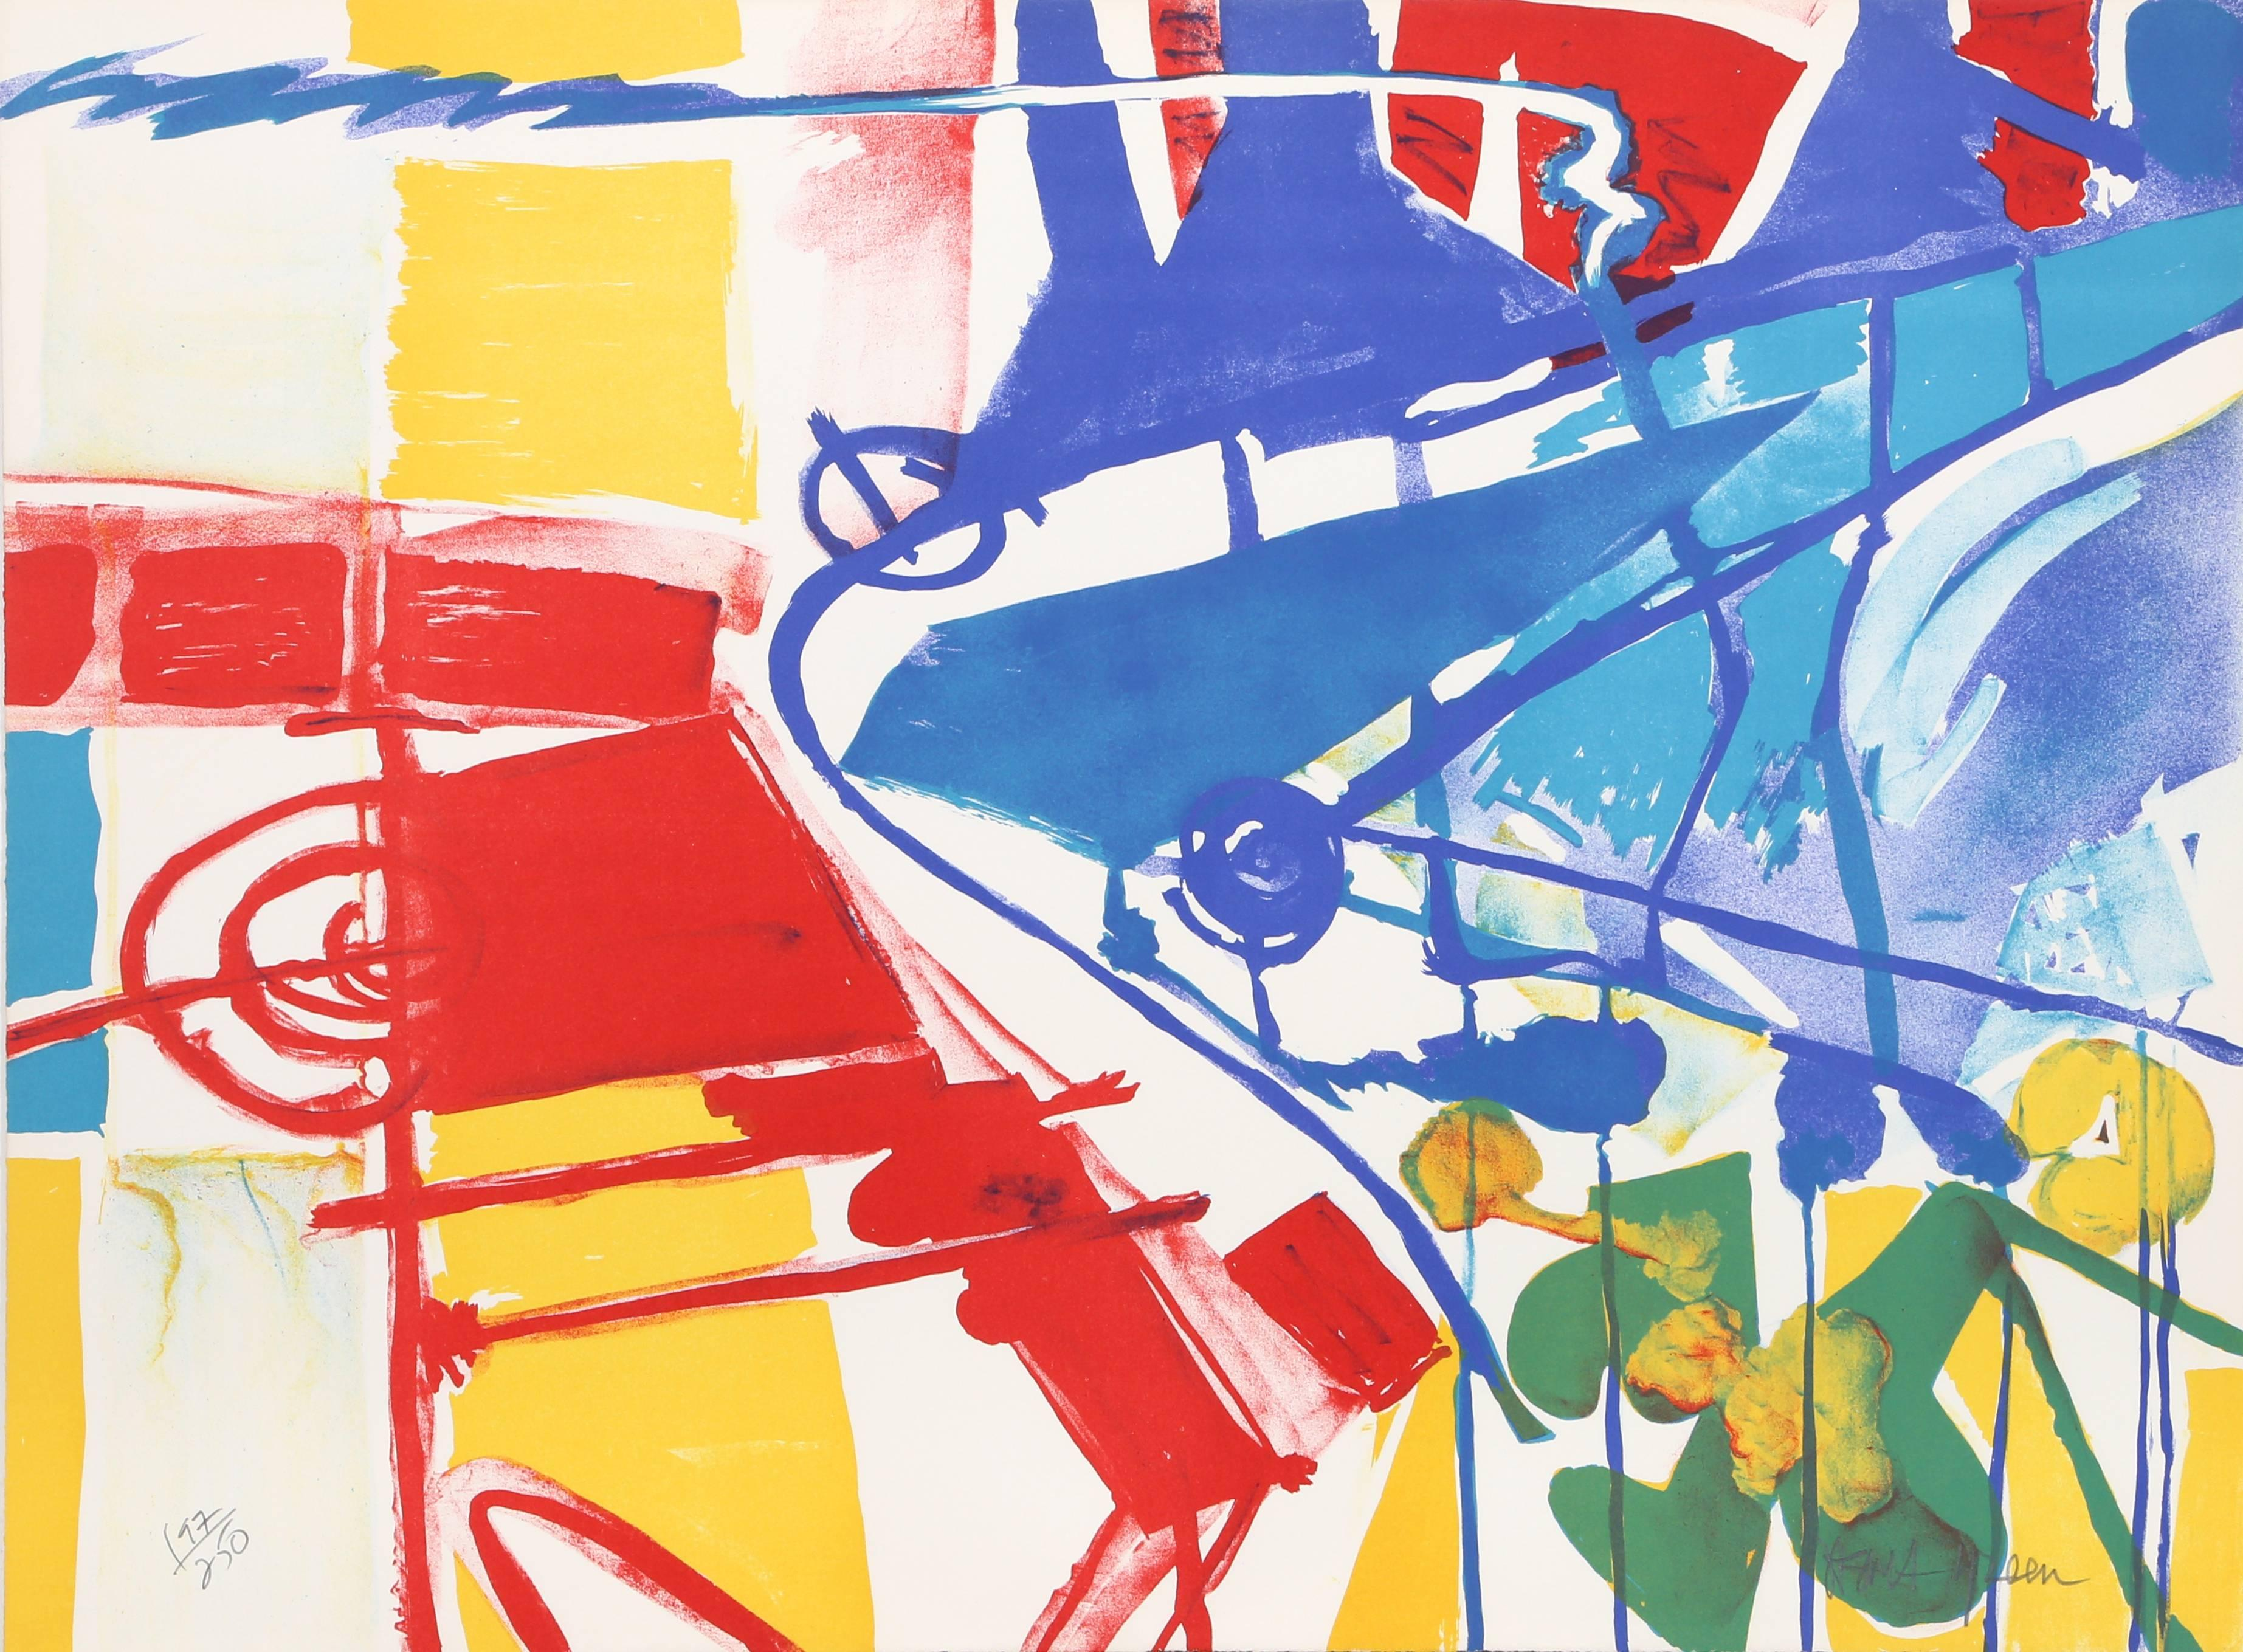 Abstract Primary Lithograph by Jasha Green